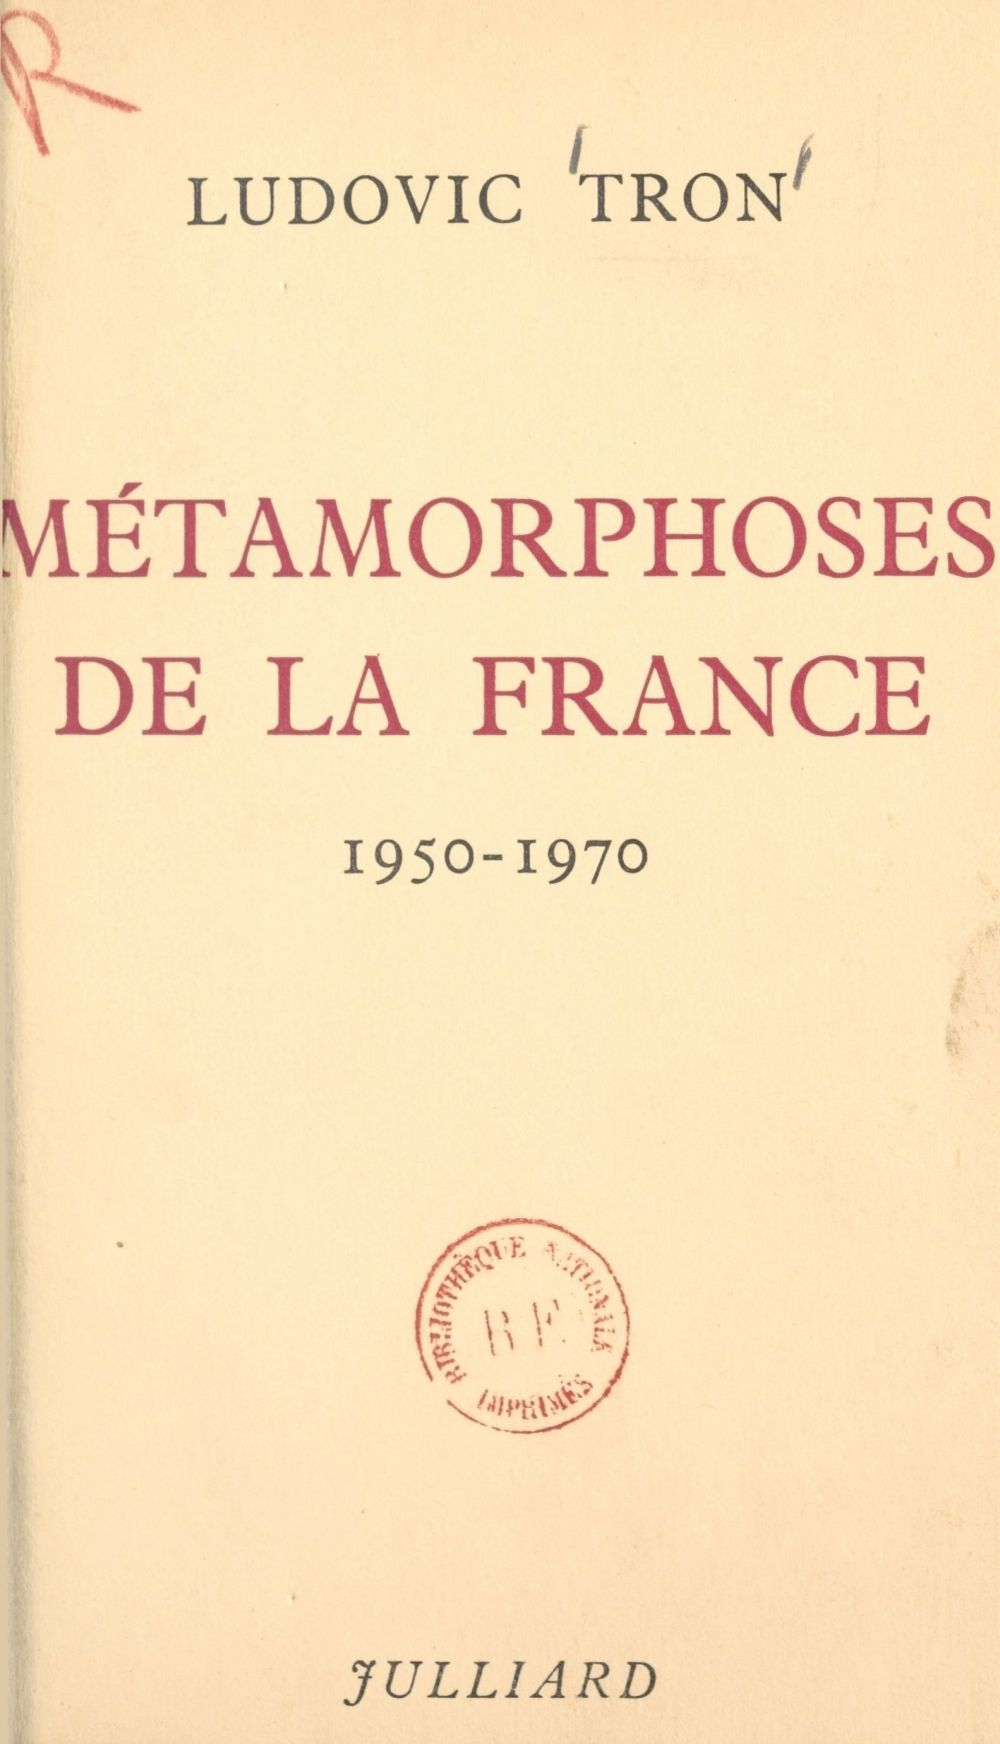 Métamorphoses de la France